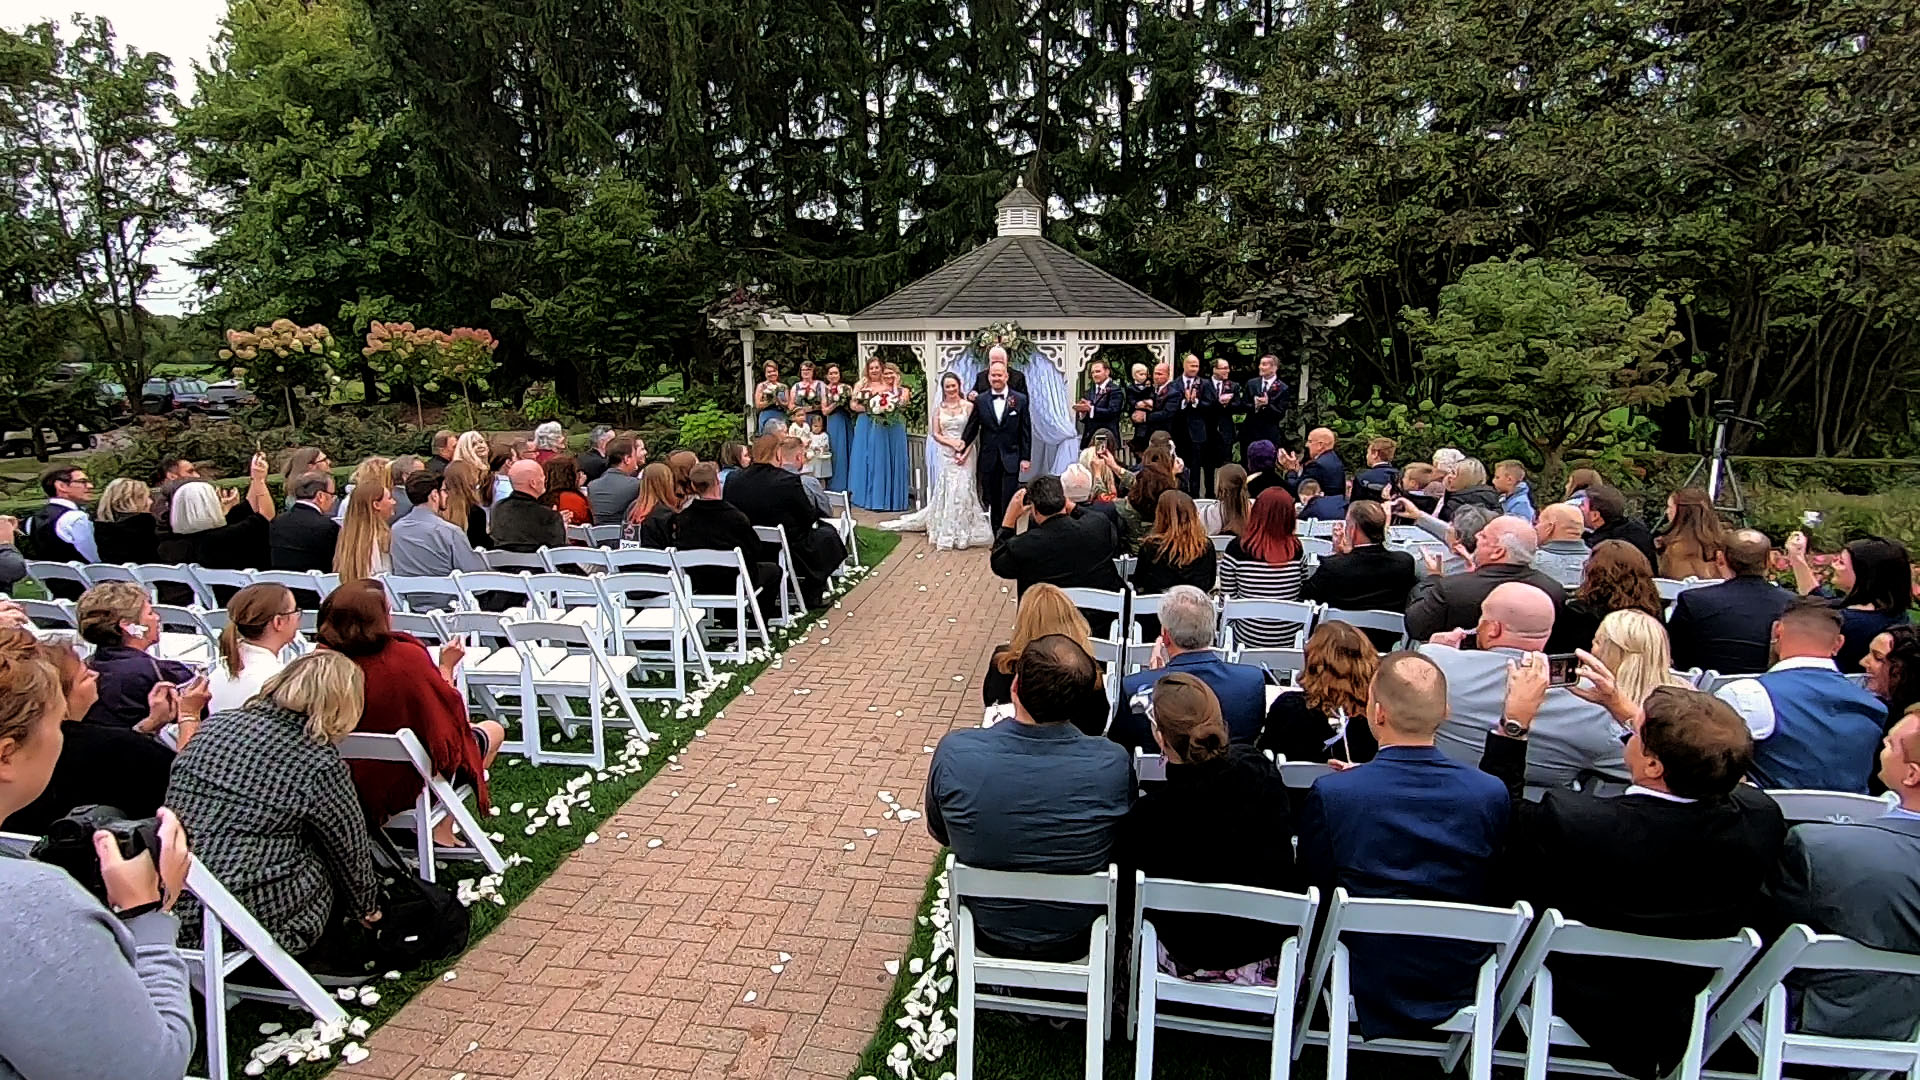 The Wedding of Daniel Buckley and Brandin Dungan | A Non-Sequitur Haze